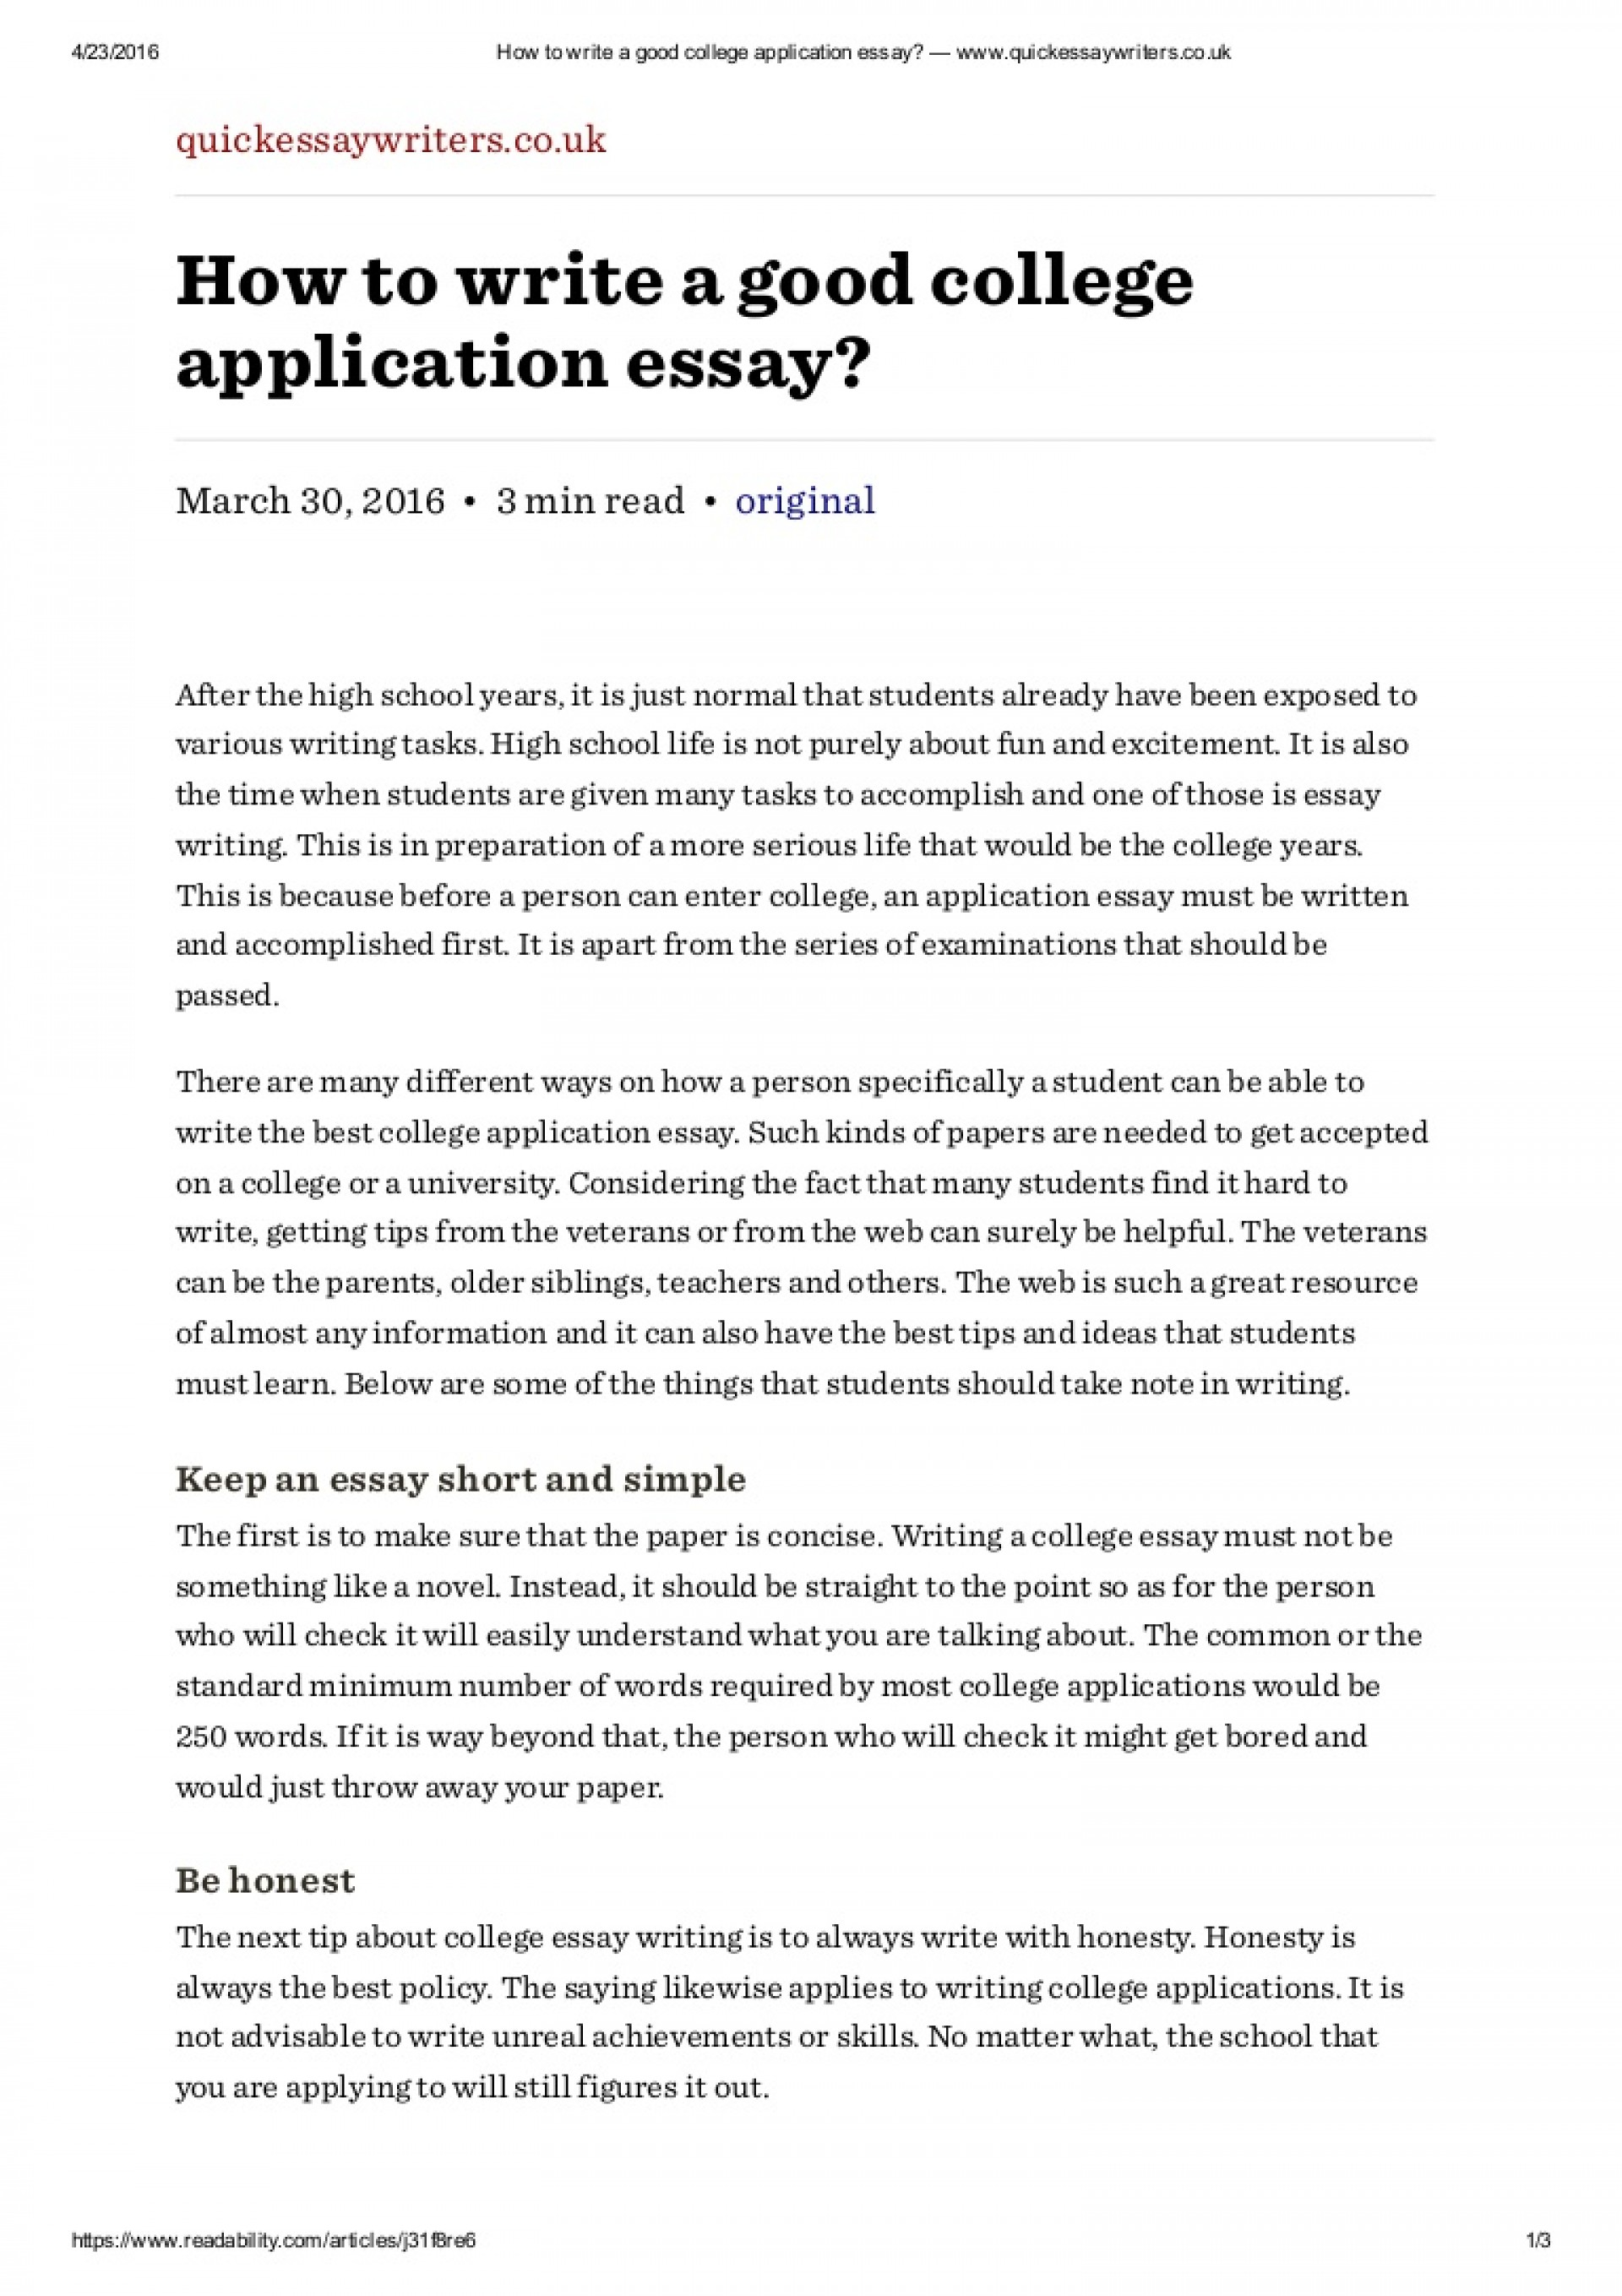 008 Essay Exampleonestyow To Write Good College Application Writing Essays Sampleowtowriteagoodcollegeapplicationessaywww Thumbn Scholarship For Your Mba Examples University Staggering Honesty Katturai In Tamil Students Hindi 1920